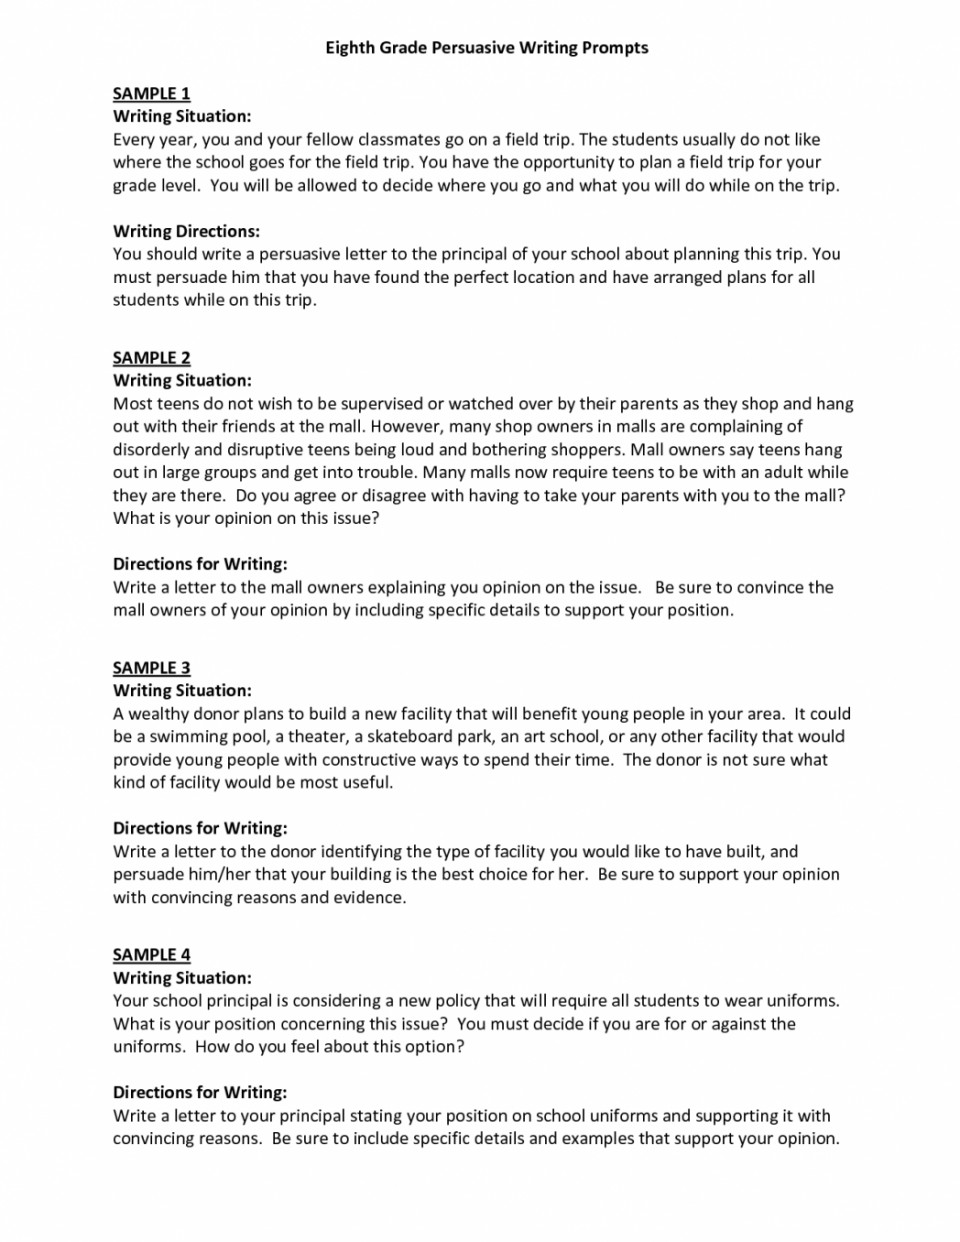 009 Essay Example Essays For Middle School Writing Good High Persuasive Examples How To Write Application Introduction Students Page Narrative Personal Informative Argument Shocking Leadership 960